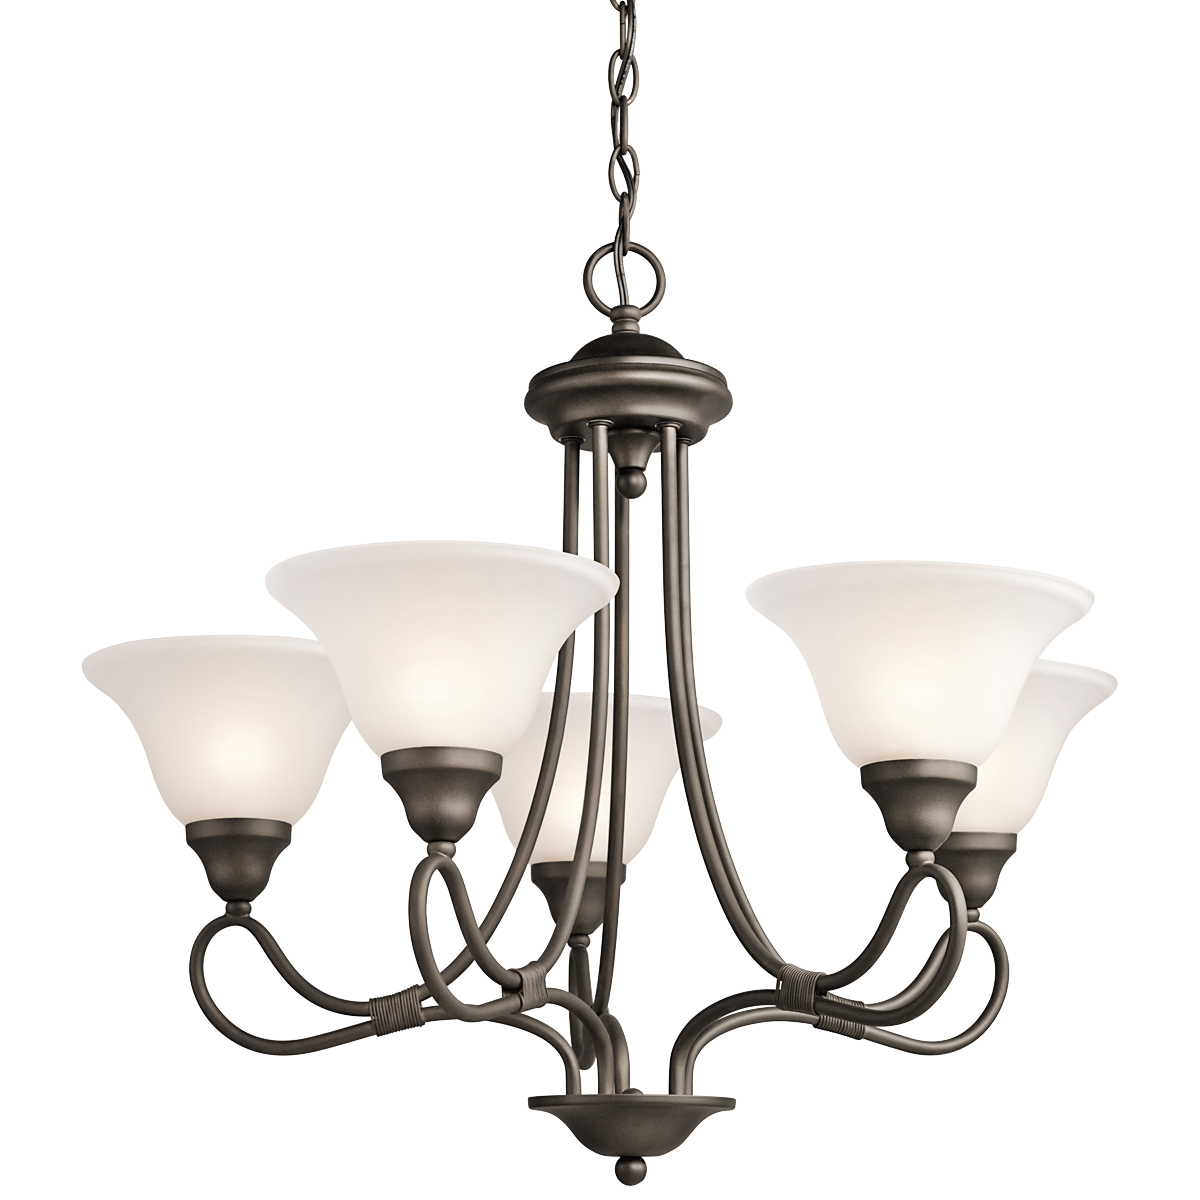 Awesome Stafford 5 Light Chandelier Olde Bronze By Cardello Lighting And Decor For Home Ideas